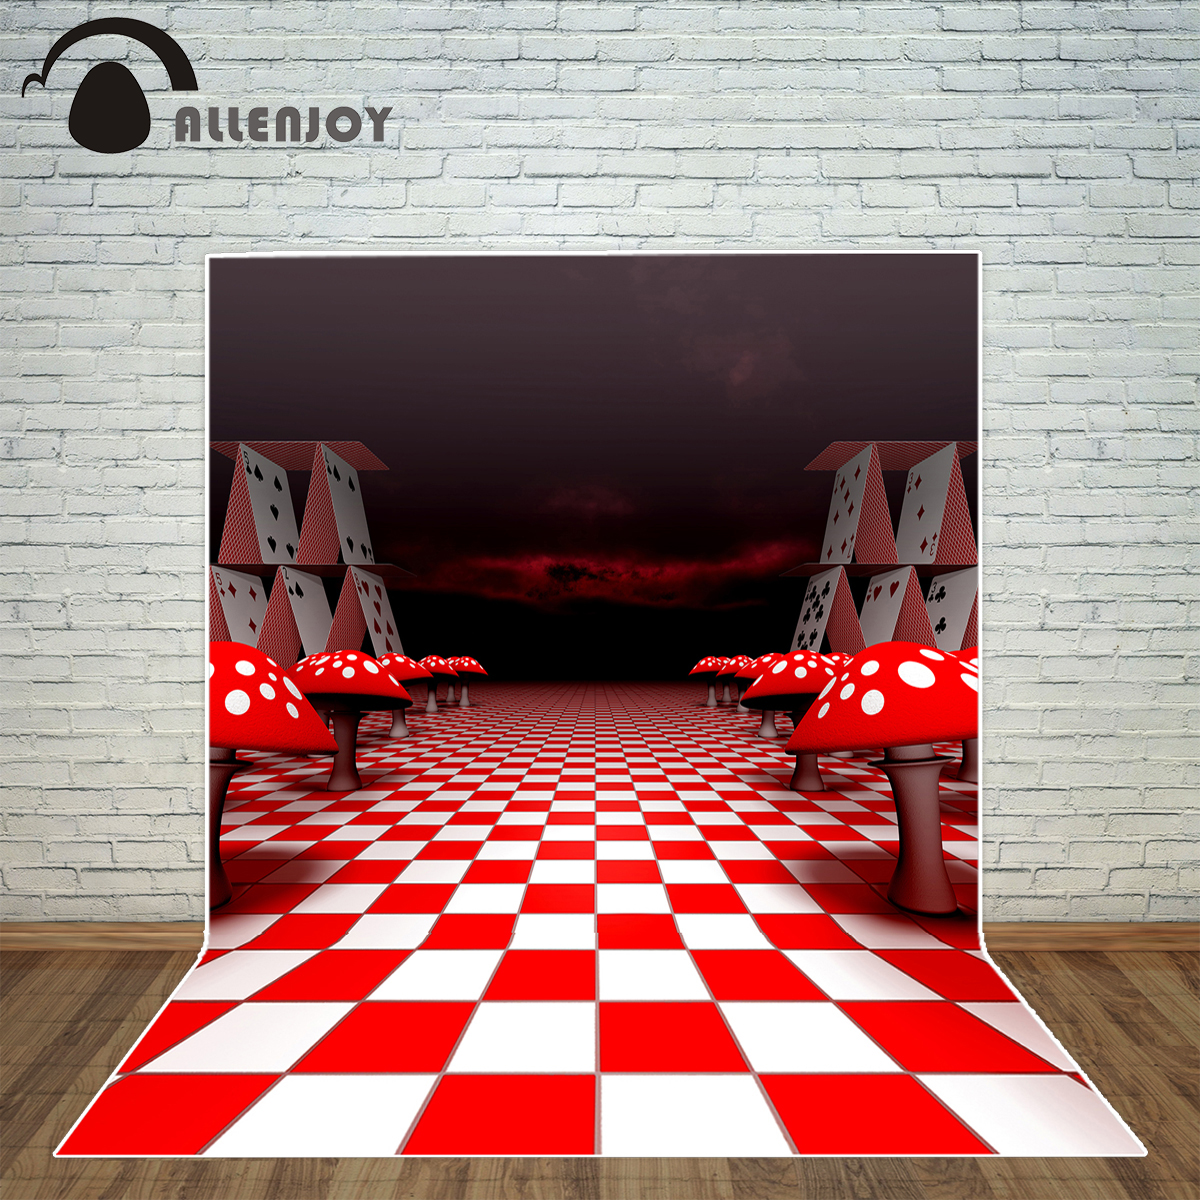 Allenjoy photography backdrop Alice mushroom cards chessboard fairy tale background photo studio new design camera fotografica photo background 5x7ft fairy tale mushroom house photography backdrop studio props for children